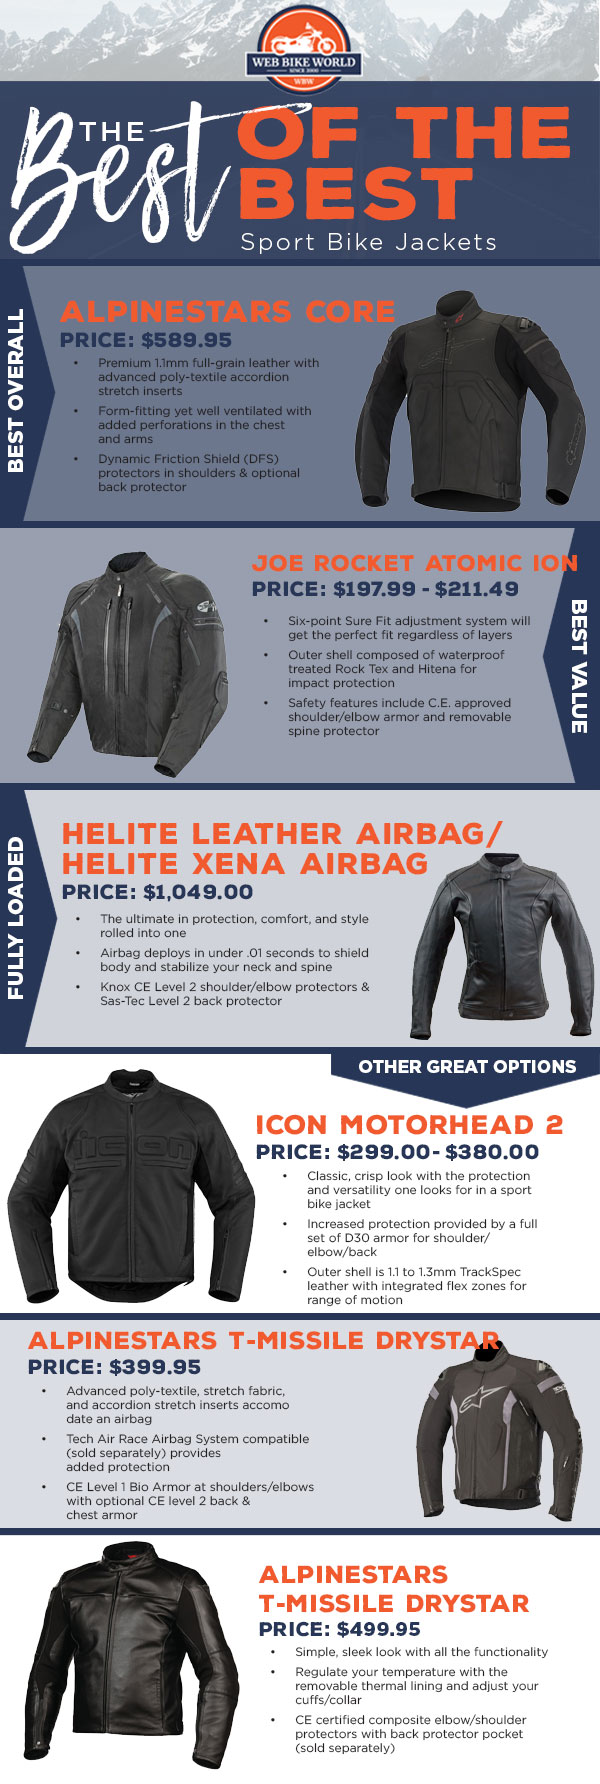 The Best Sportbike Jacket Infographic 2019